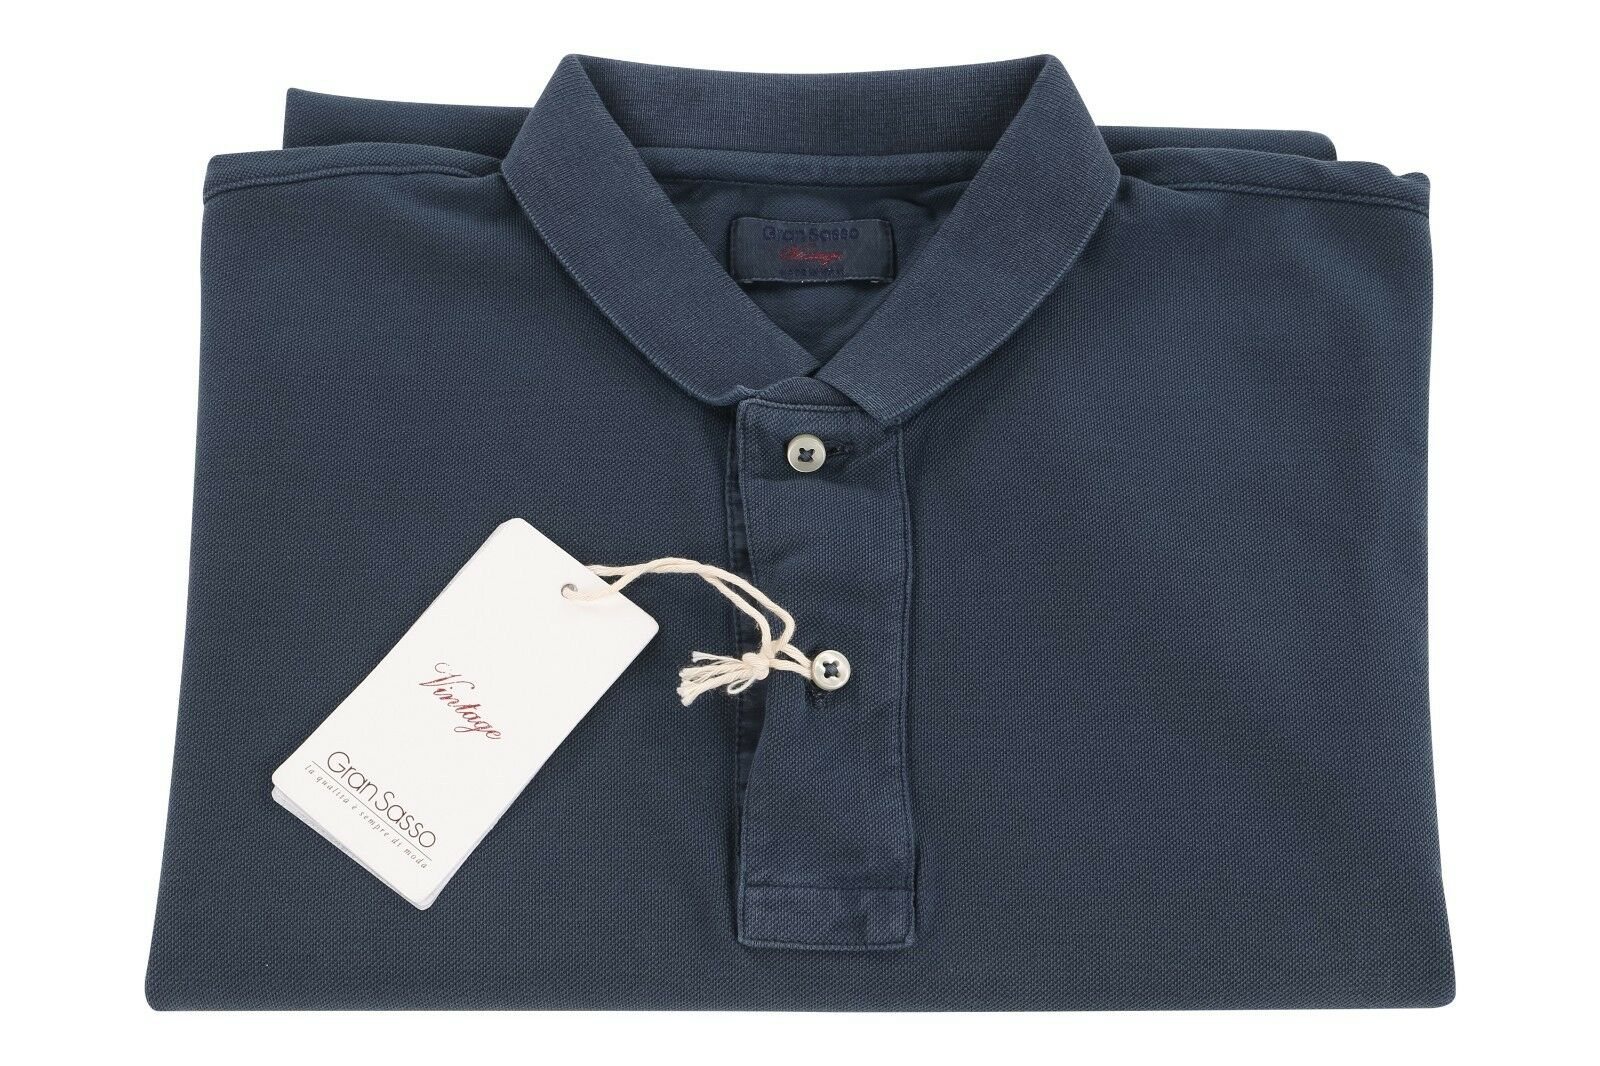 Gran Sasso Vintage 40US 50EU Cotton Short Sleeve Polo Shirt Dark bluee